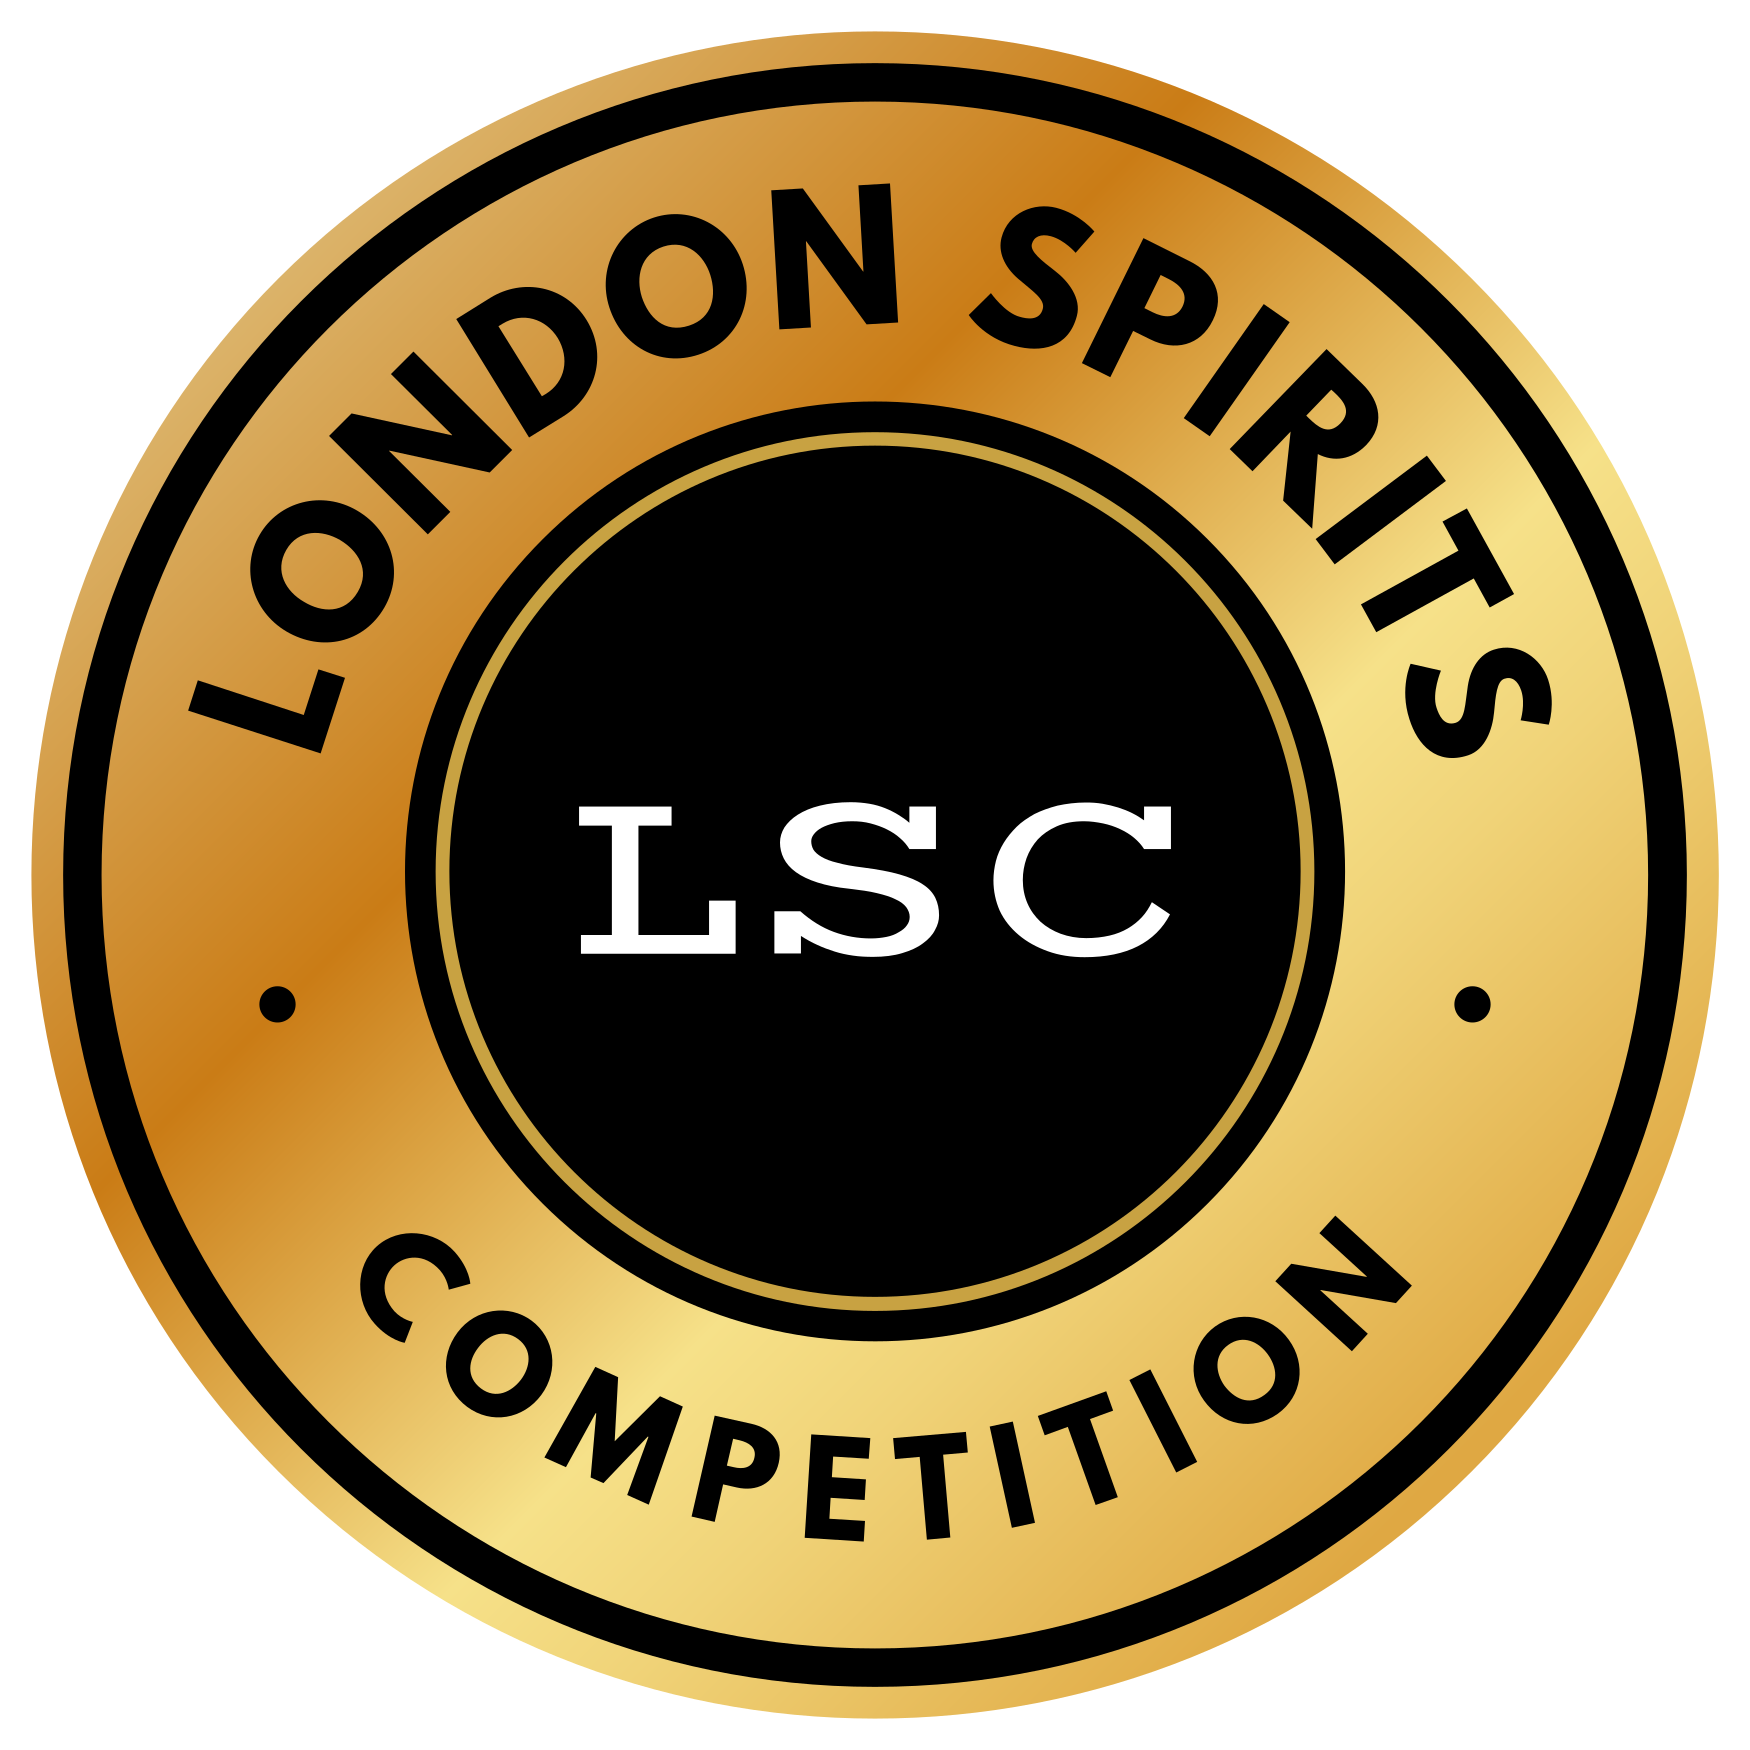 London Spirits Competition Logo